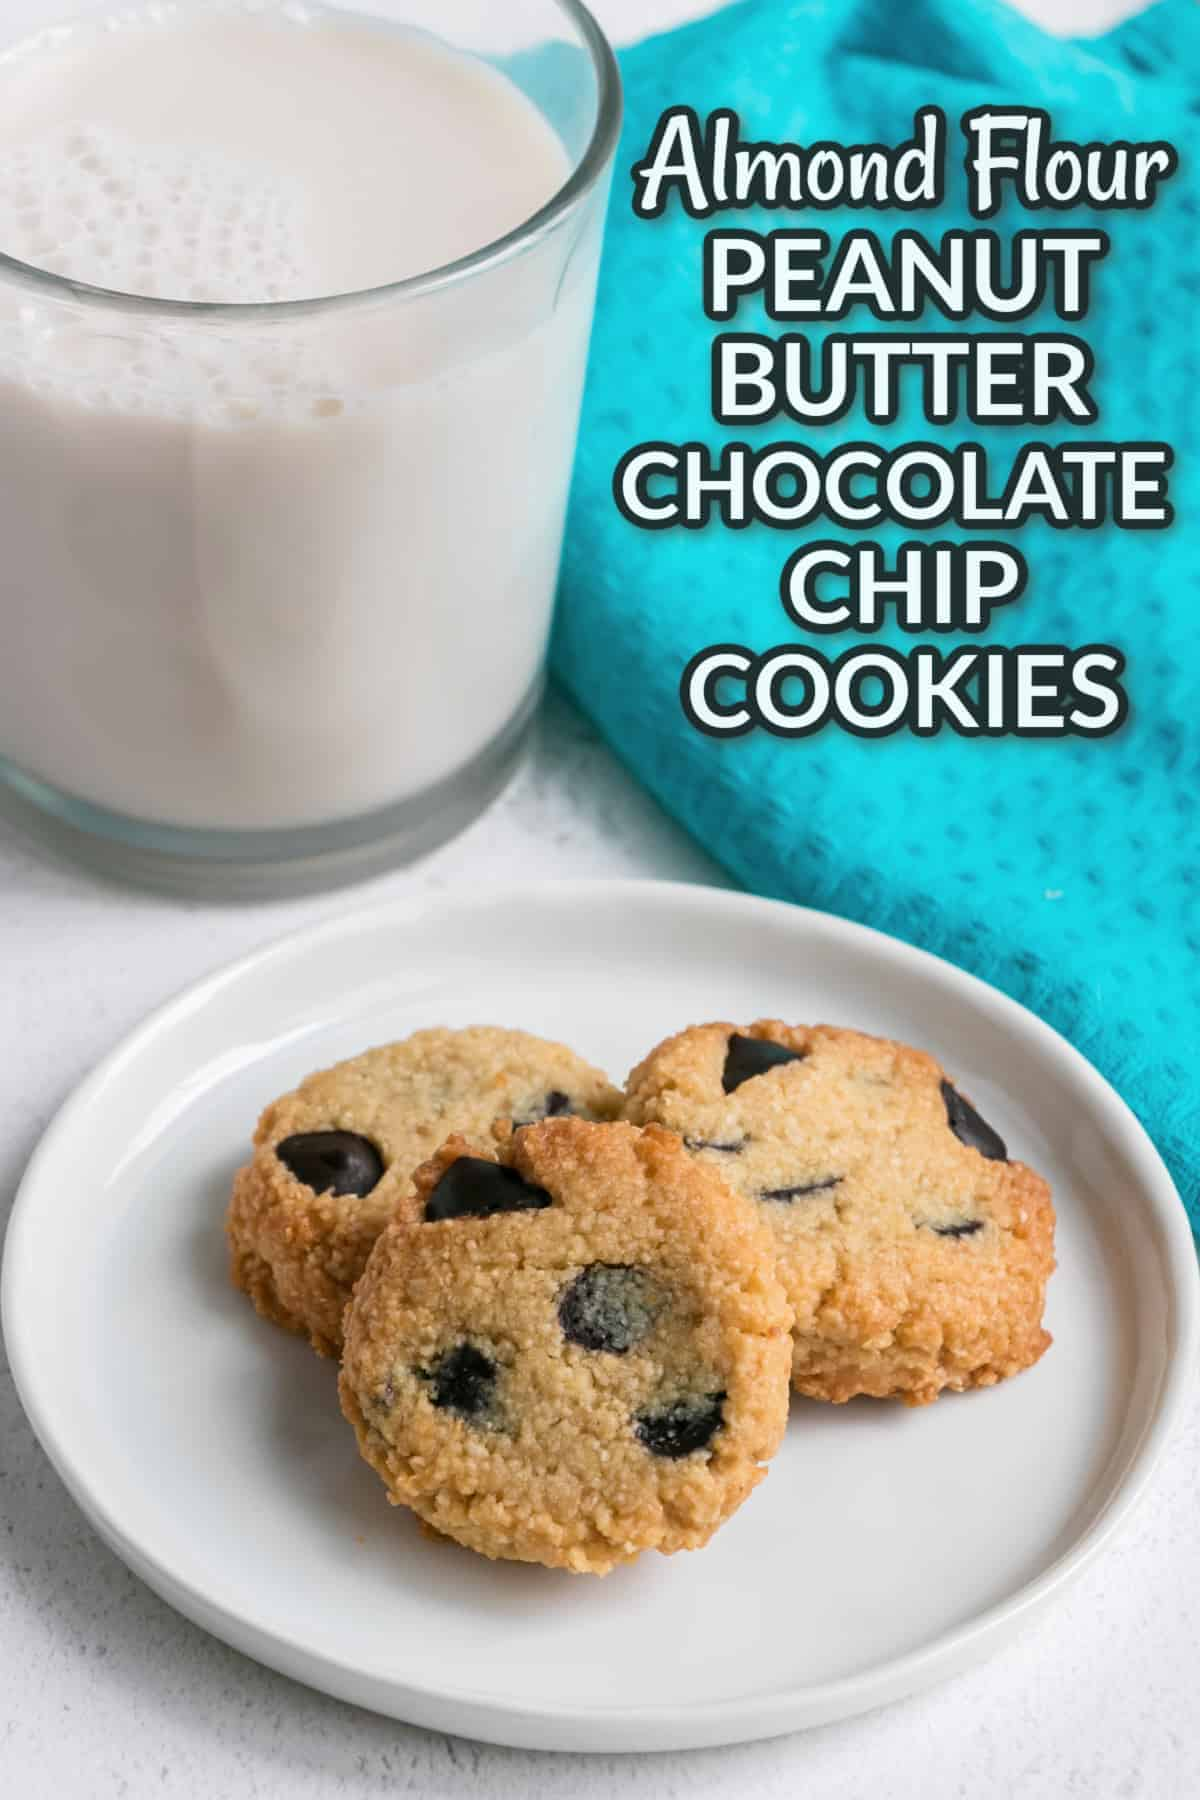 almond flour peanut butter chocolate chip cookies cover image